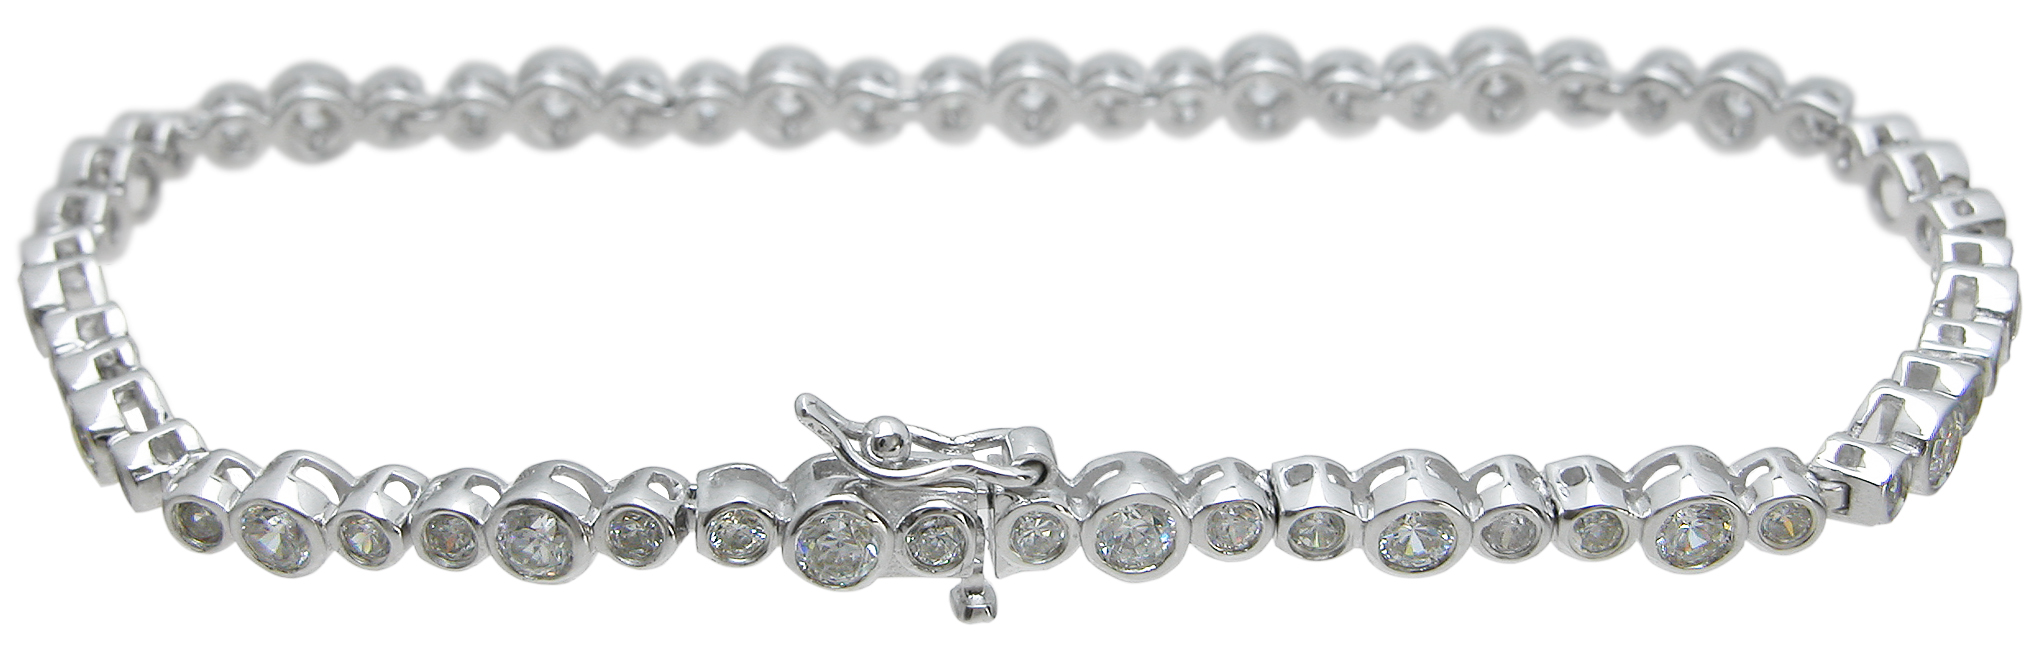 Wholesale 925 Sterling Silver Tiffany Style Bracelet